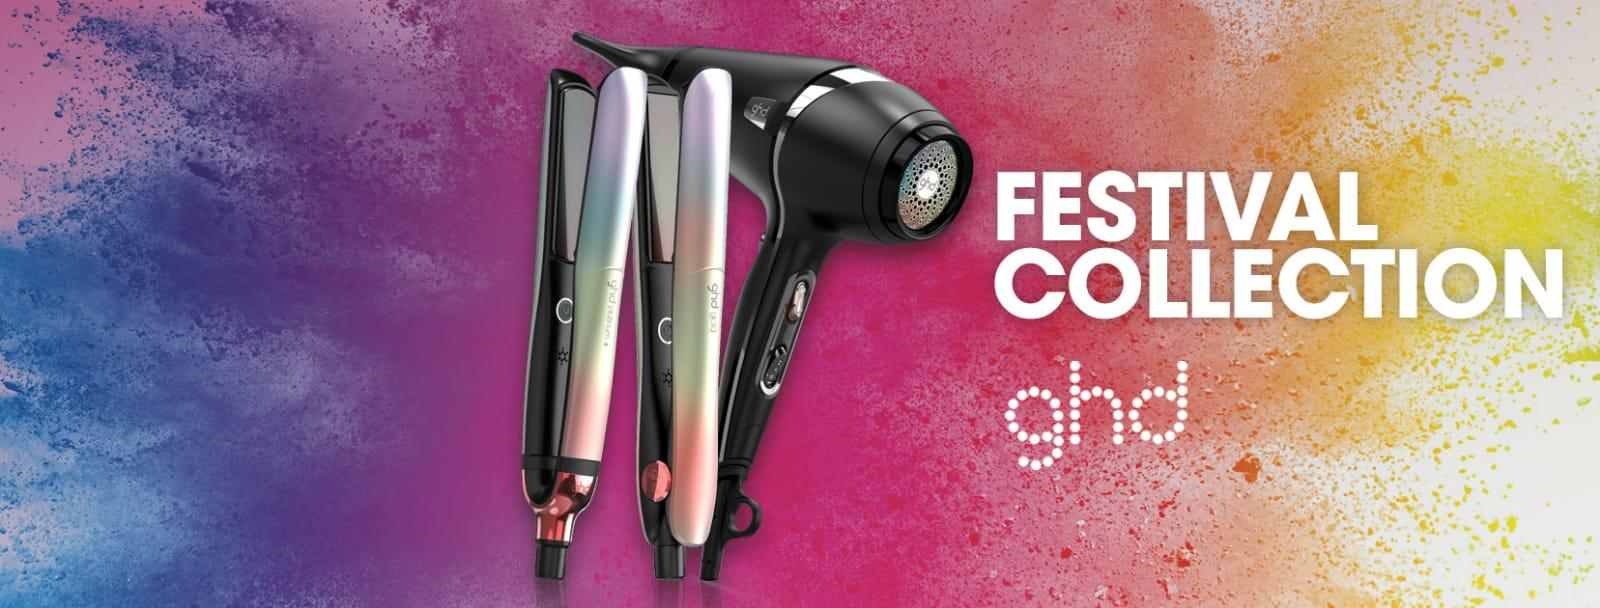 ghd festival collection en Yaiza Moreno Hair Spa, tu salón de belleza en Telde